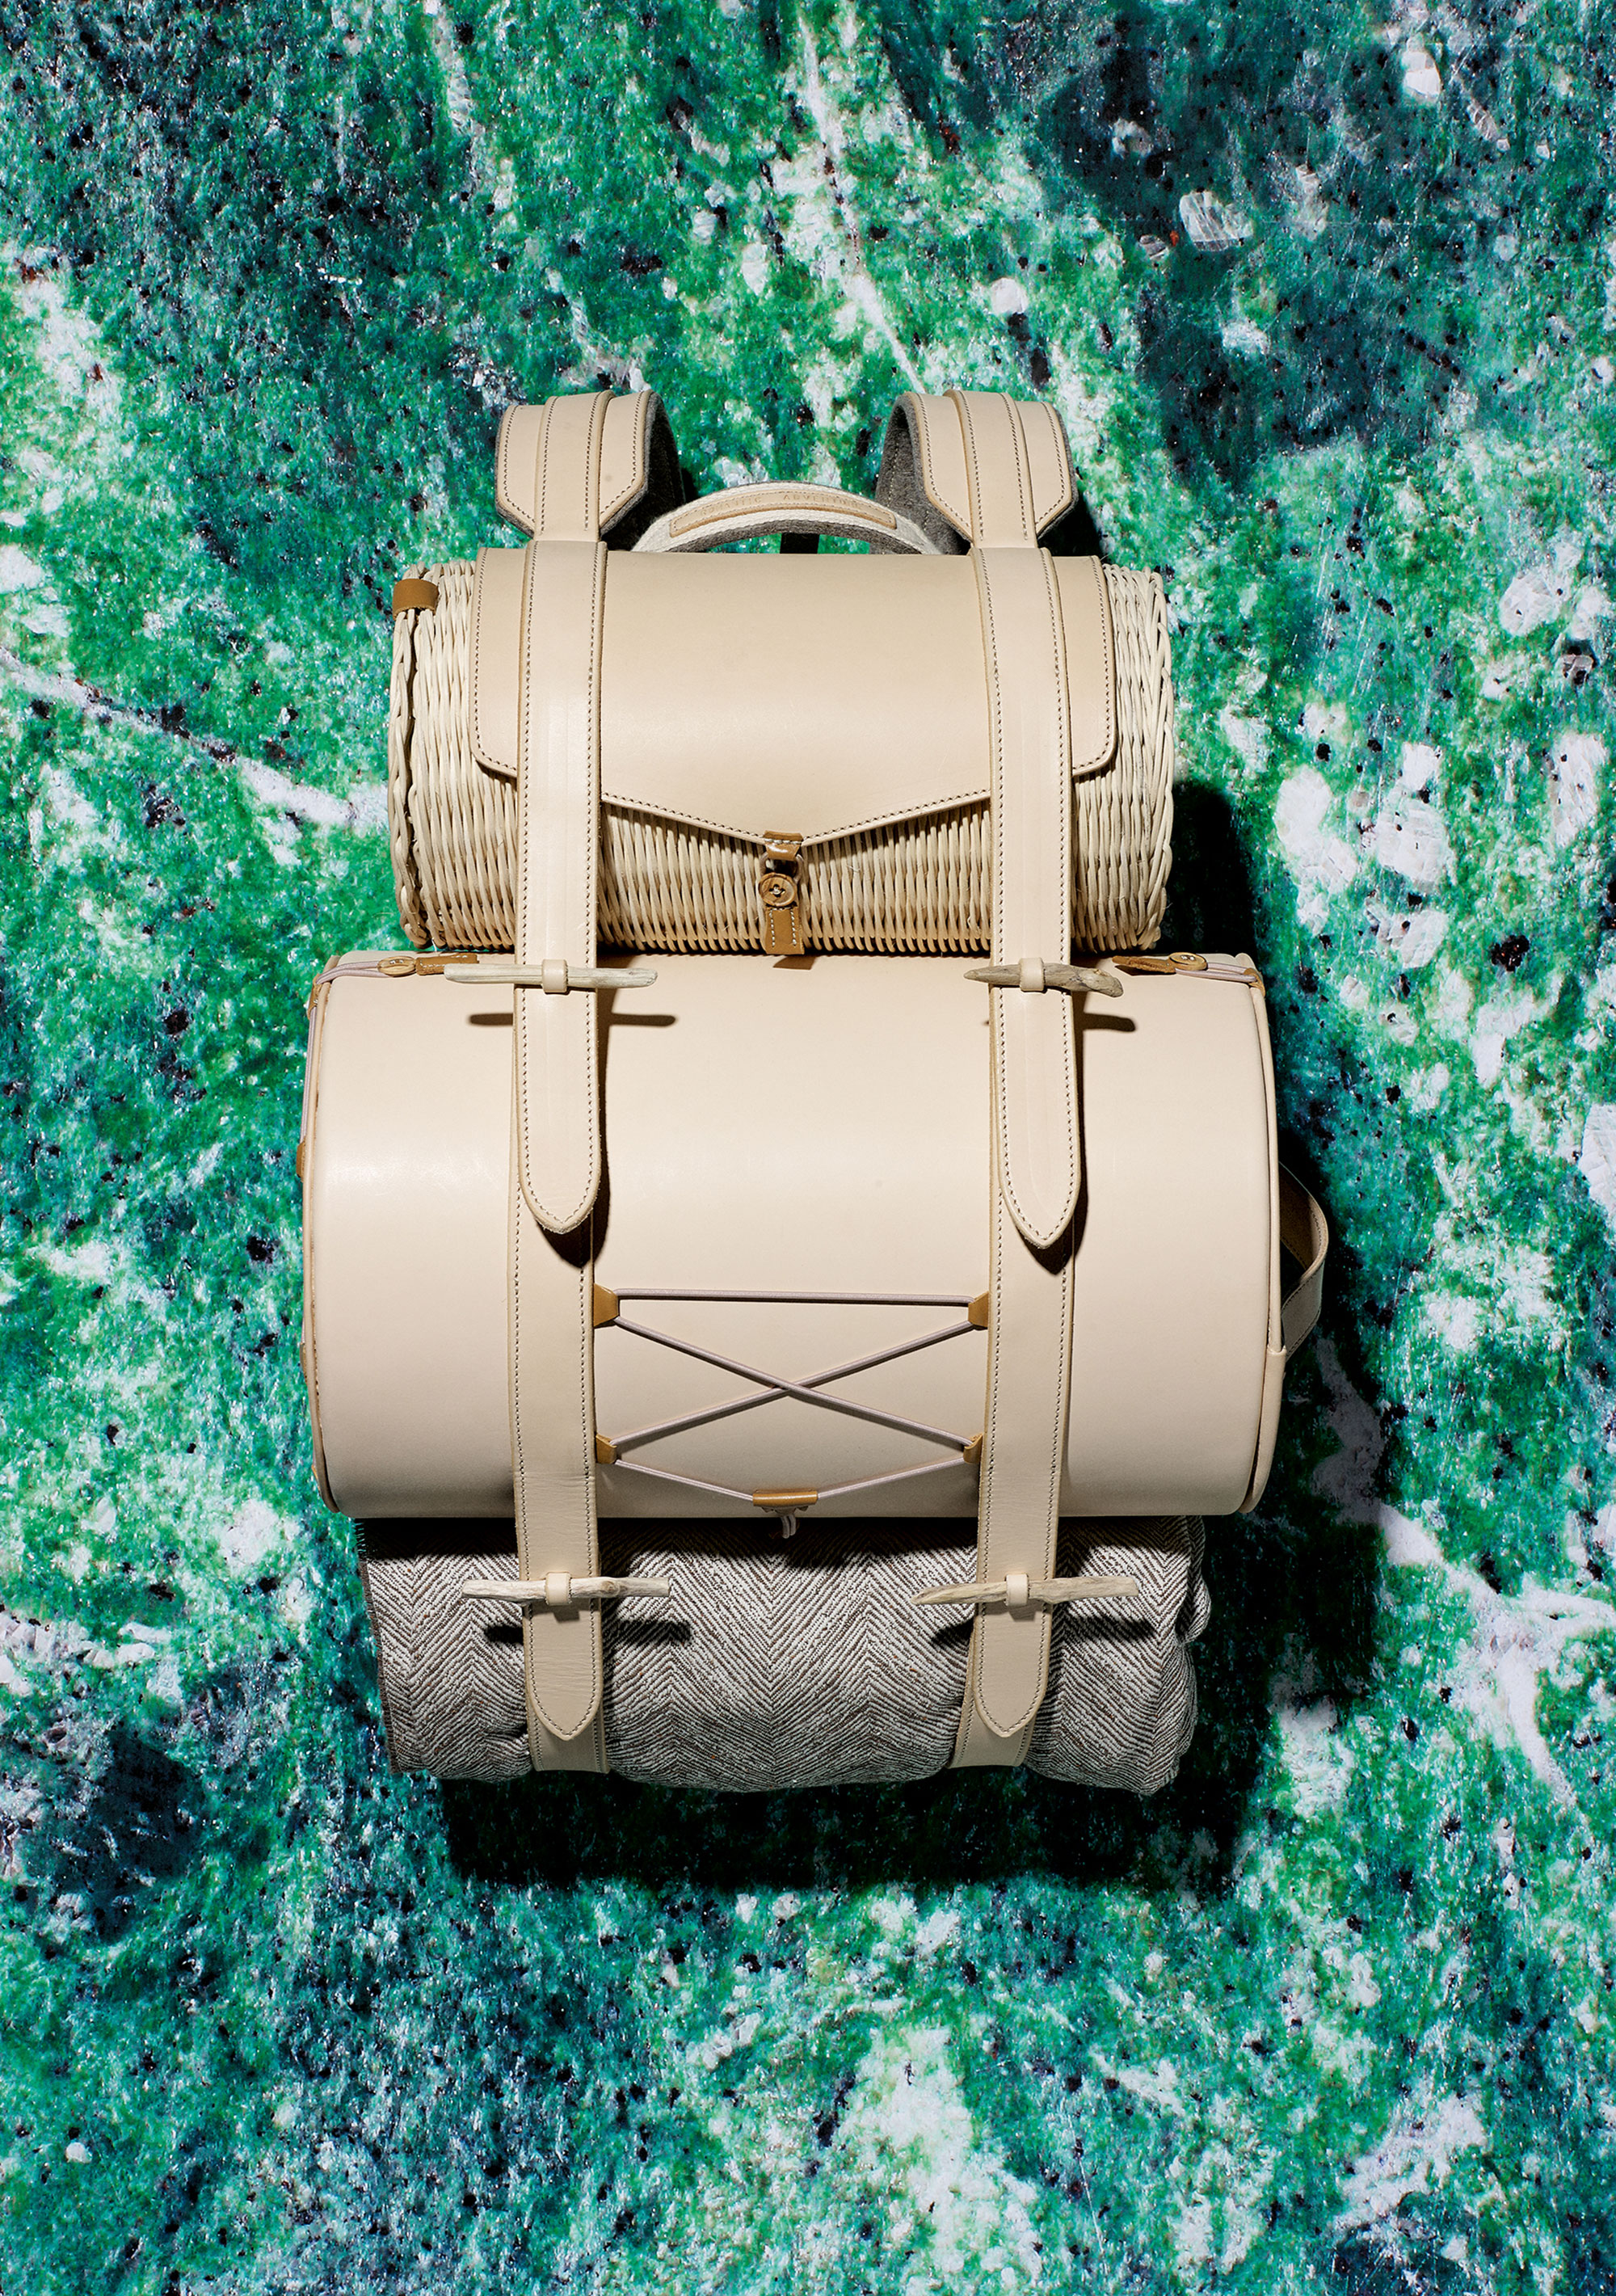 Alexis Tourron (France) • Leather backpack for Vacheron Constantin Photo by Jonas Marguet • Courtesy of ECAL and The Mass